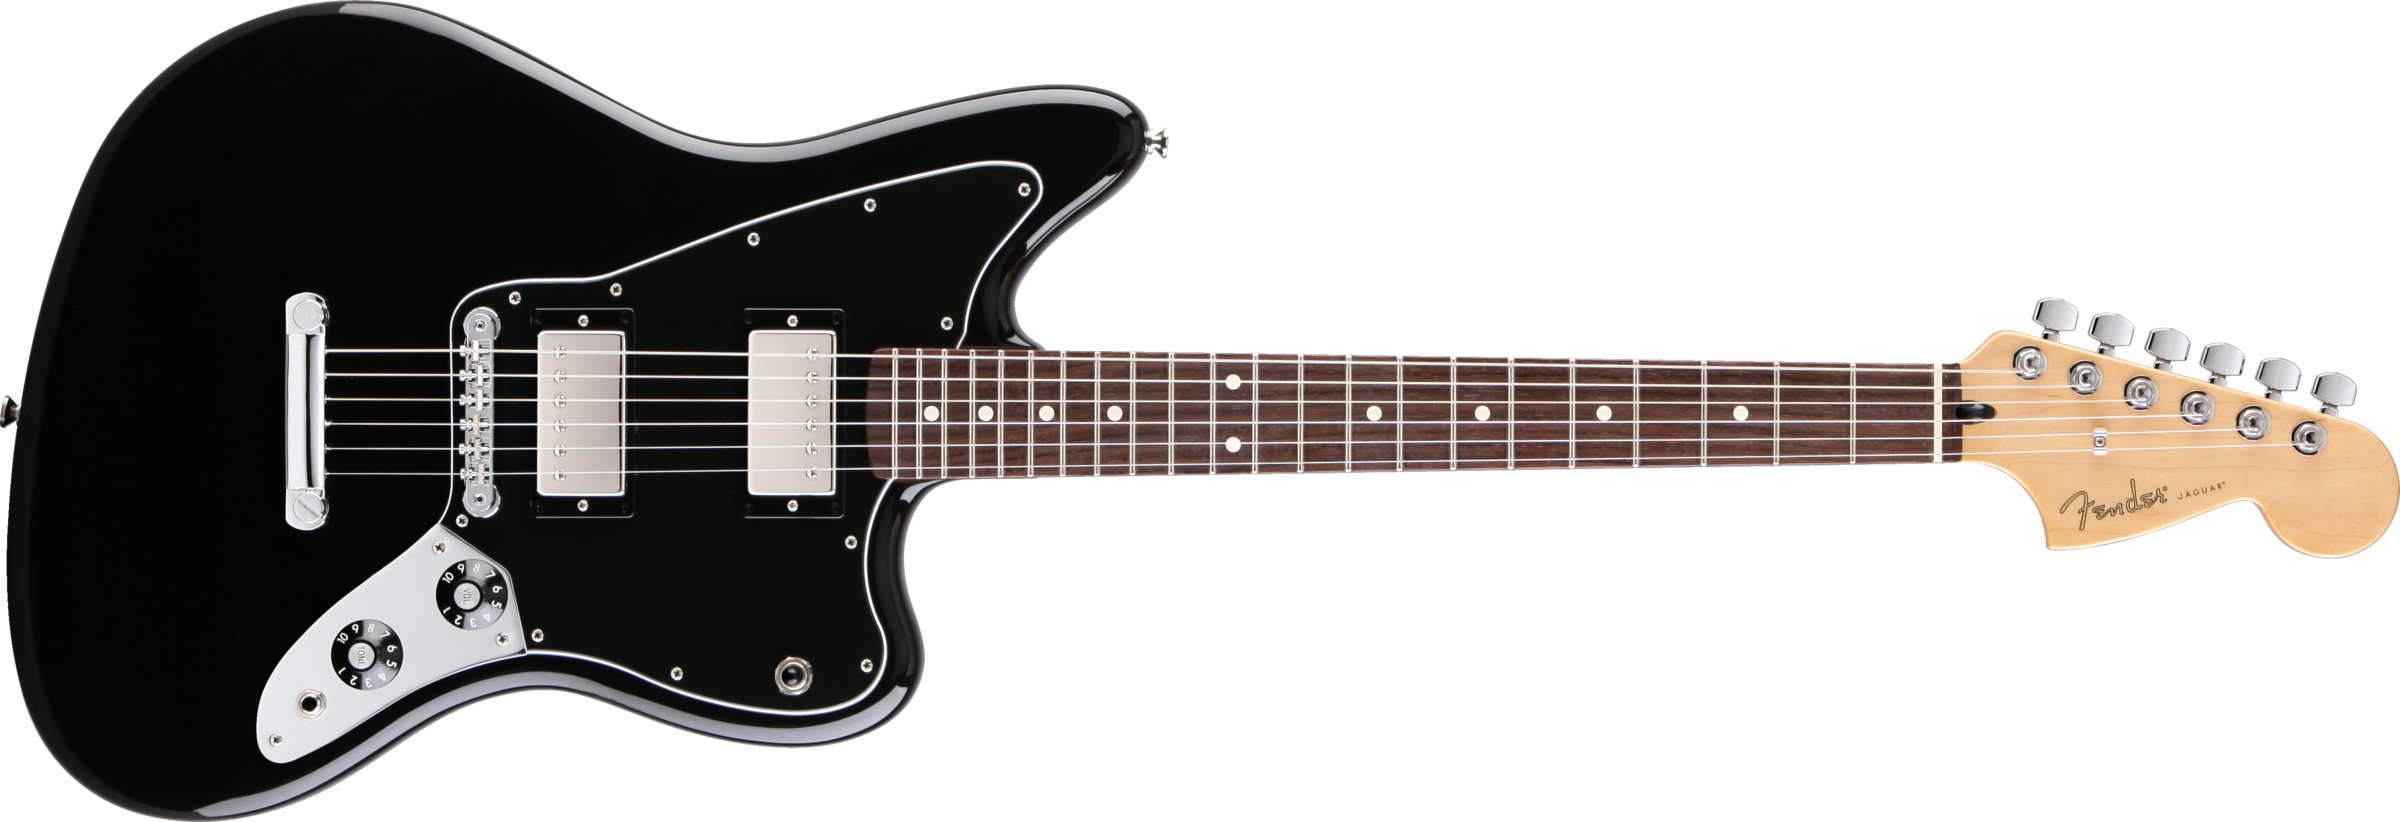 fender jaguar hh review